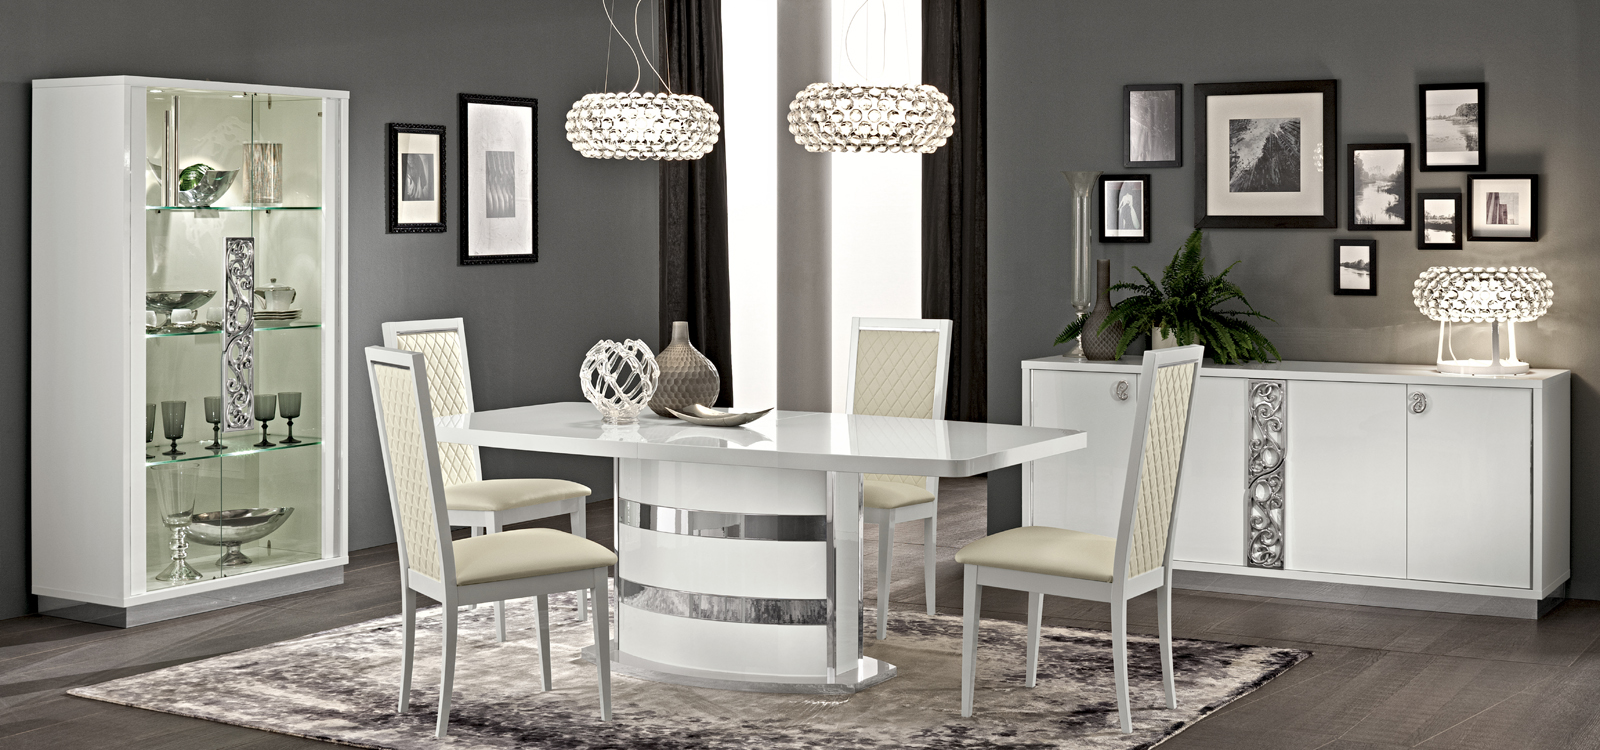 Roma Dining White, Italy, Modern Formal Dining Sets, Dining Room ...